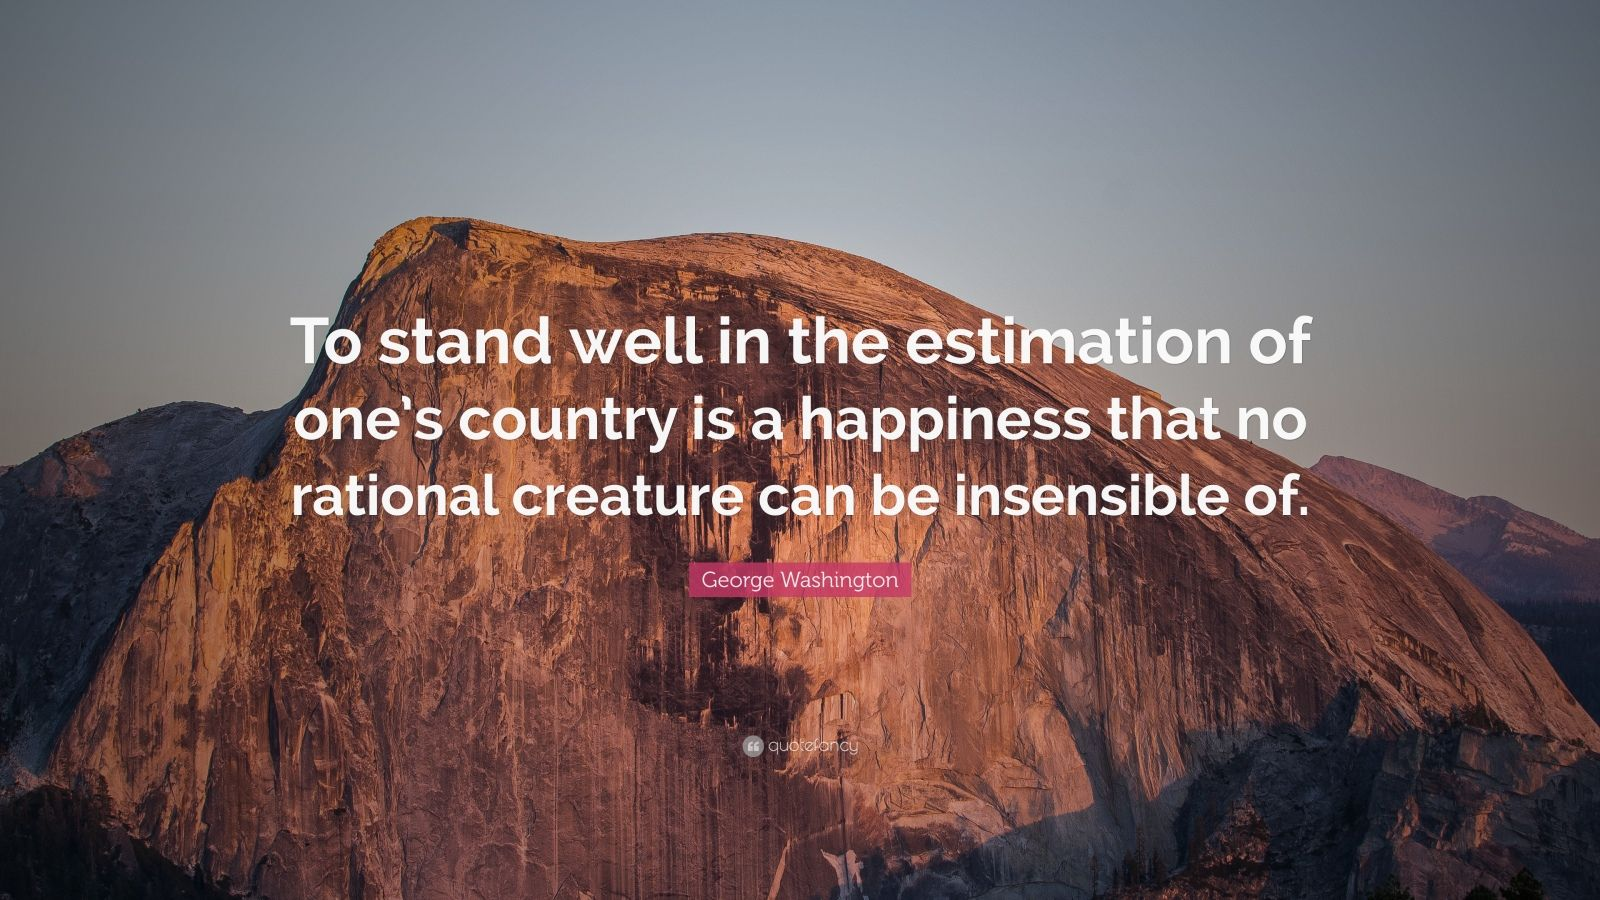 """George Washington Quote: """"To stand well in the estimation of one's country is a happiness that no rational creature can be insensible of."""""""